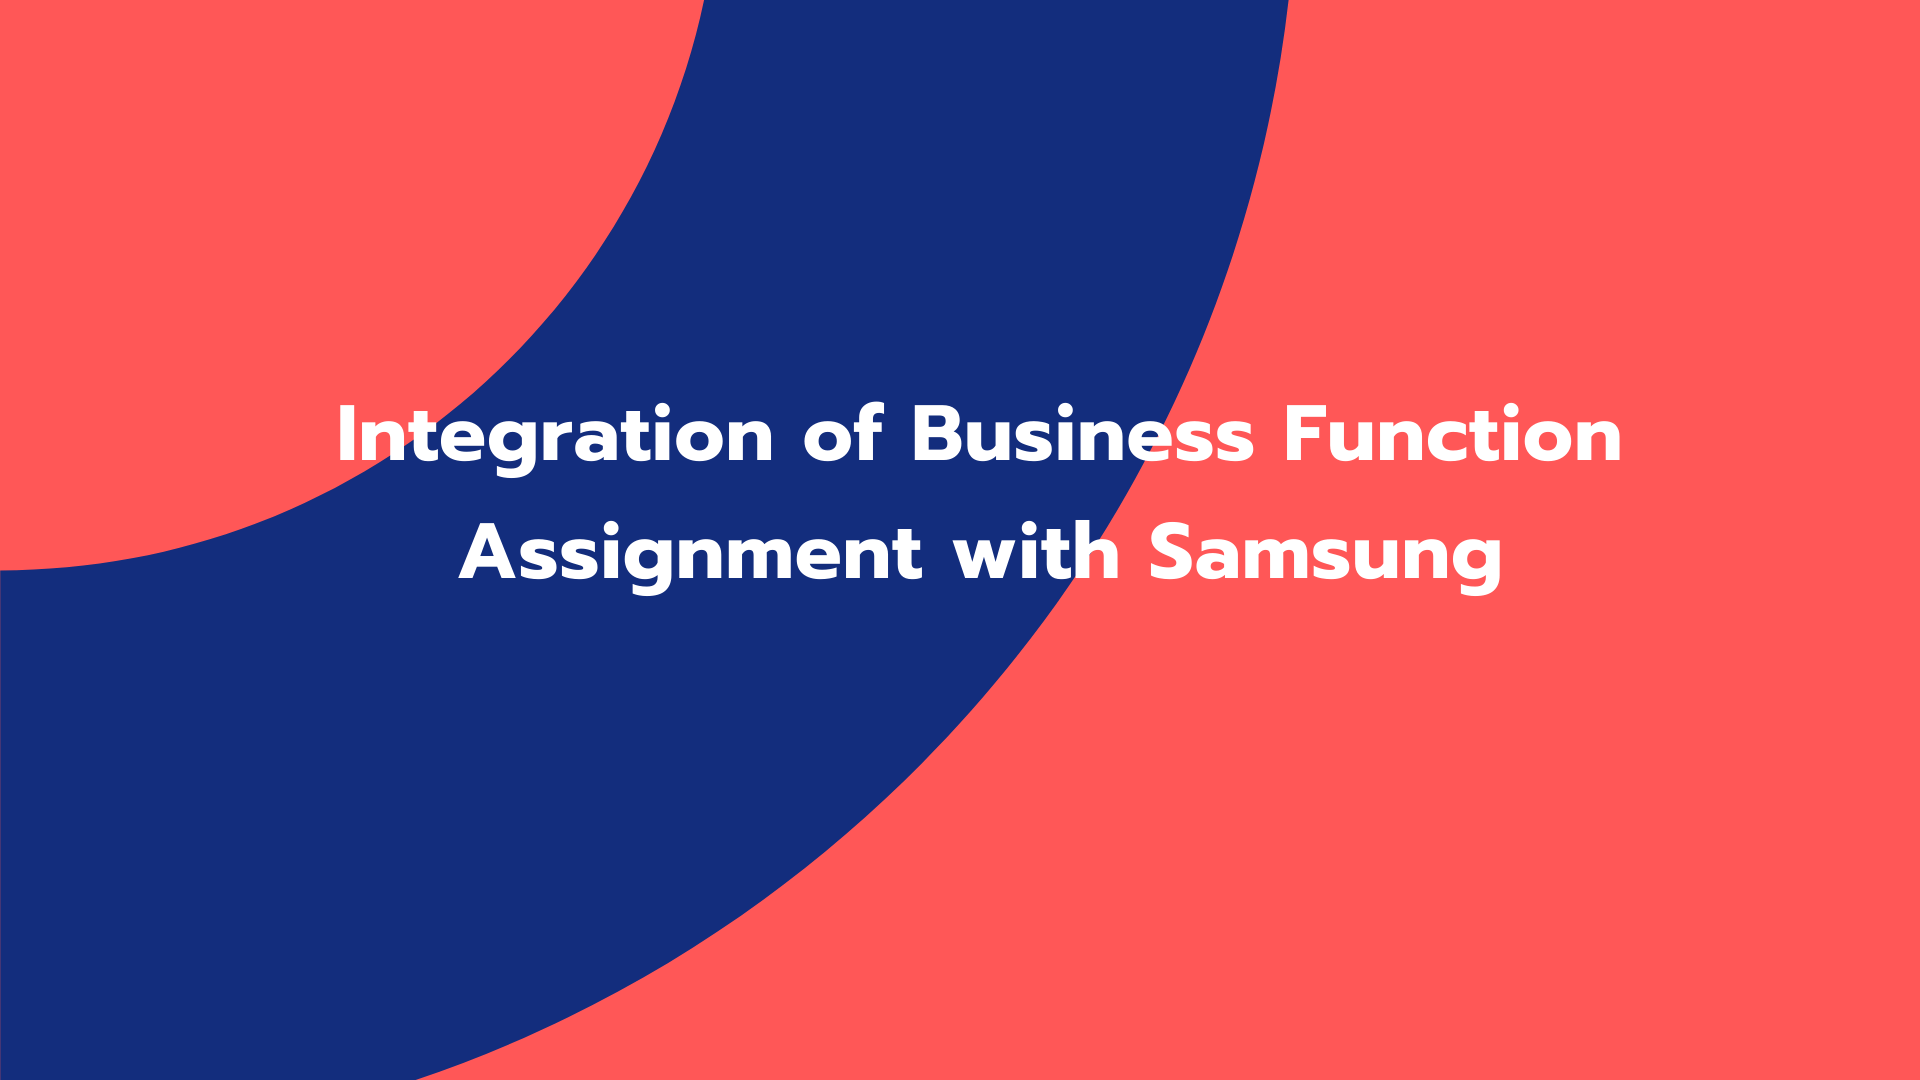 Integration of Business Function Assignment with Samsung